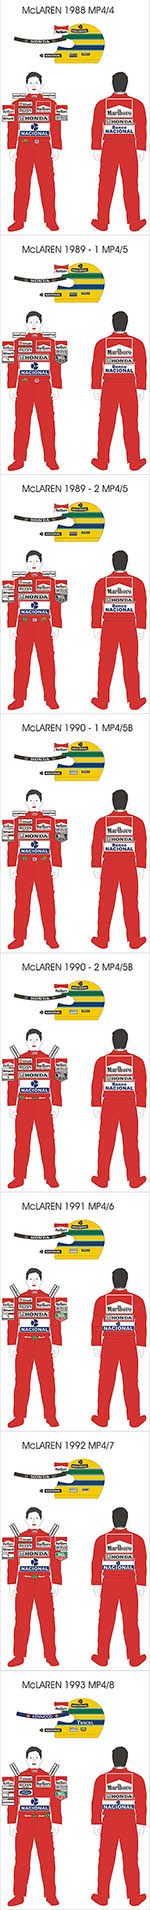 BBK 1/12 SENNA DECAL McLAREN MP4/4 MP4/5 MP4/6 MP4/7 MP4/8